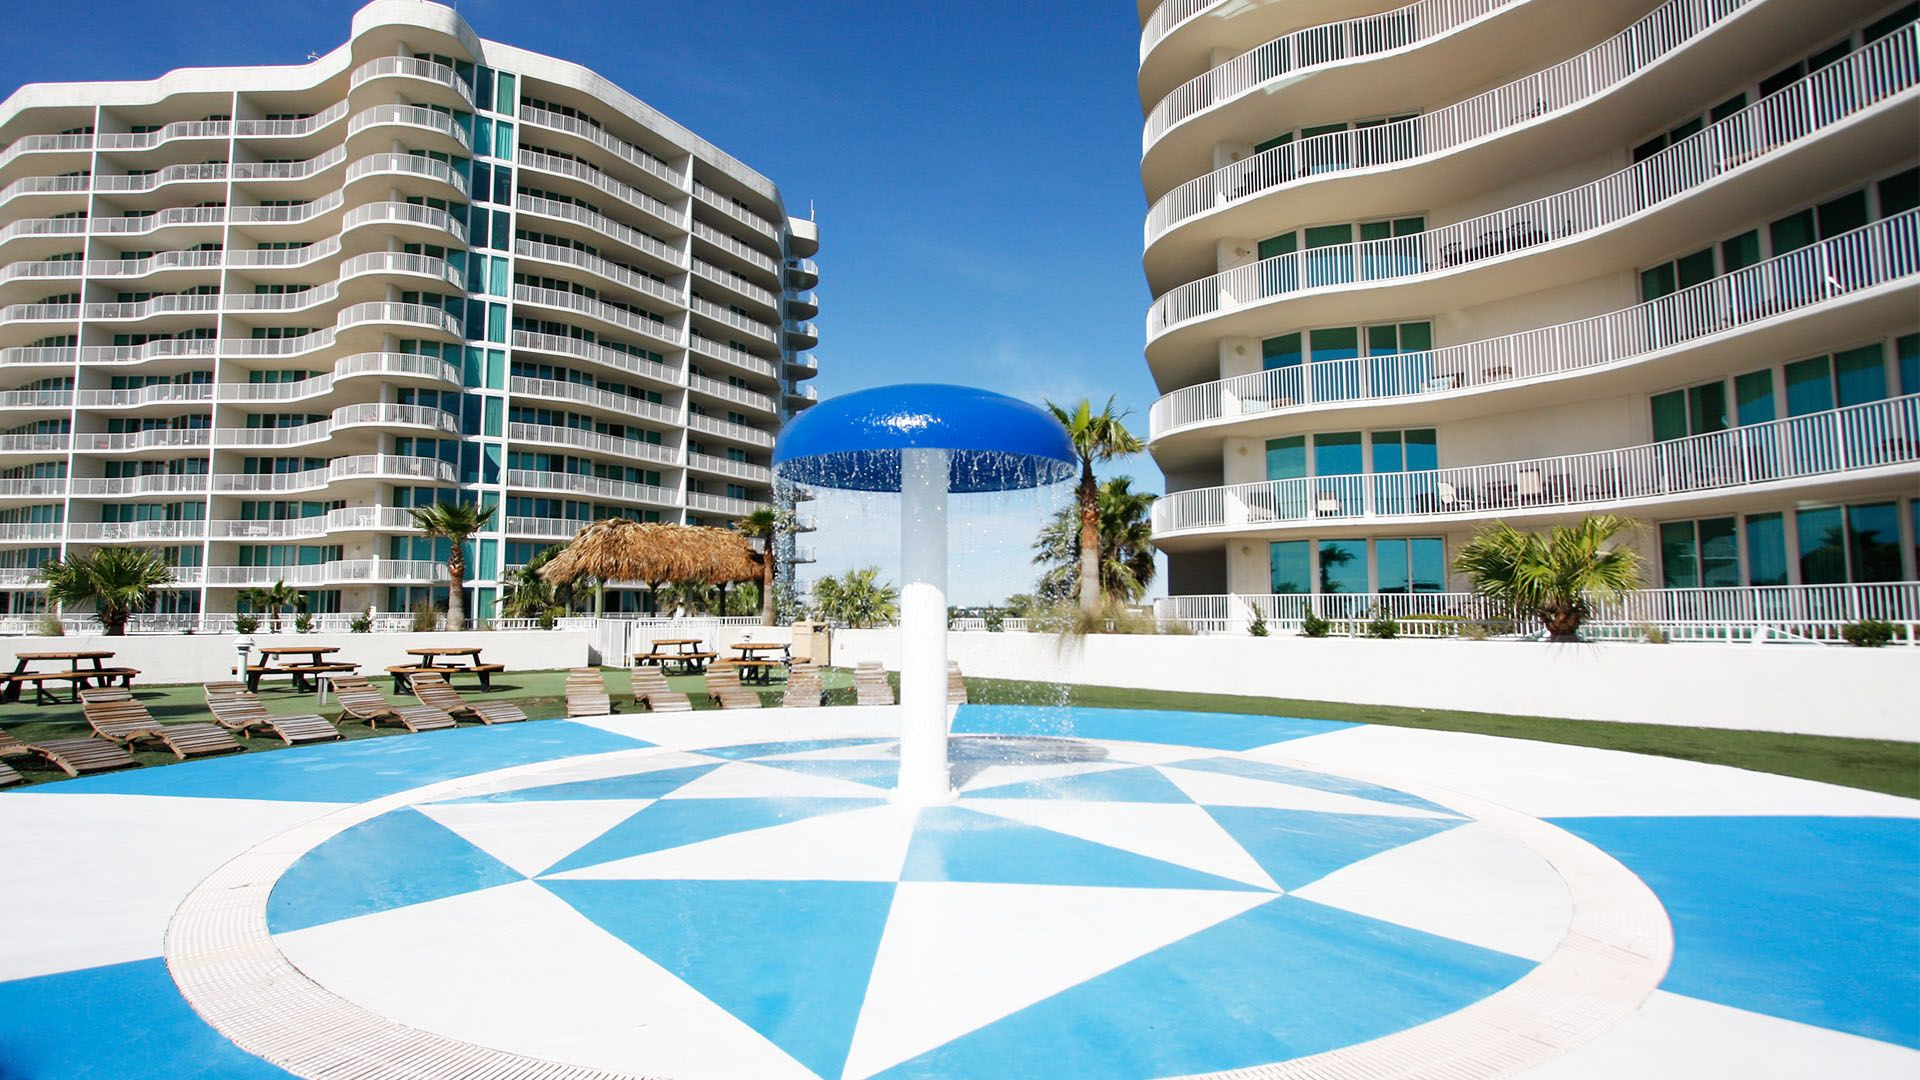 Tiered Outdoor Pools Heated Indoor Pools Hot Tubs Sauna Steam Rooms Fitness Centers Putting Orange Beach Vacation Beach Vacation Rentals Beach Vacation